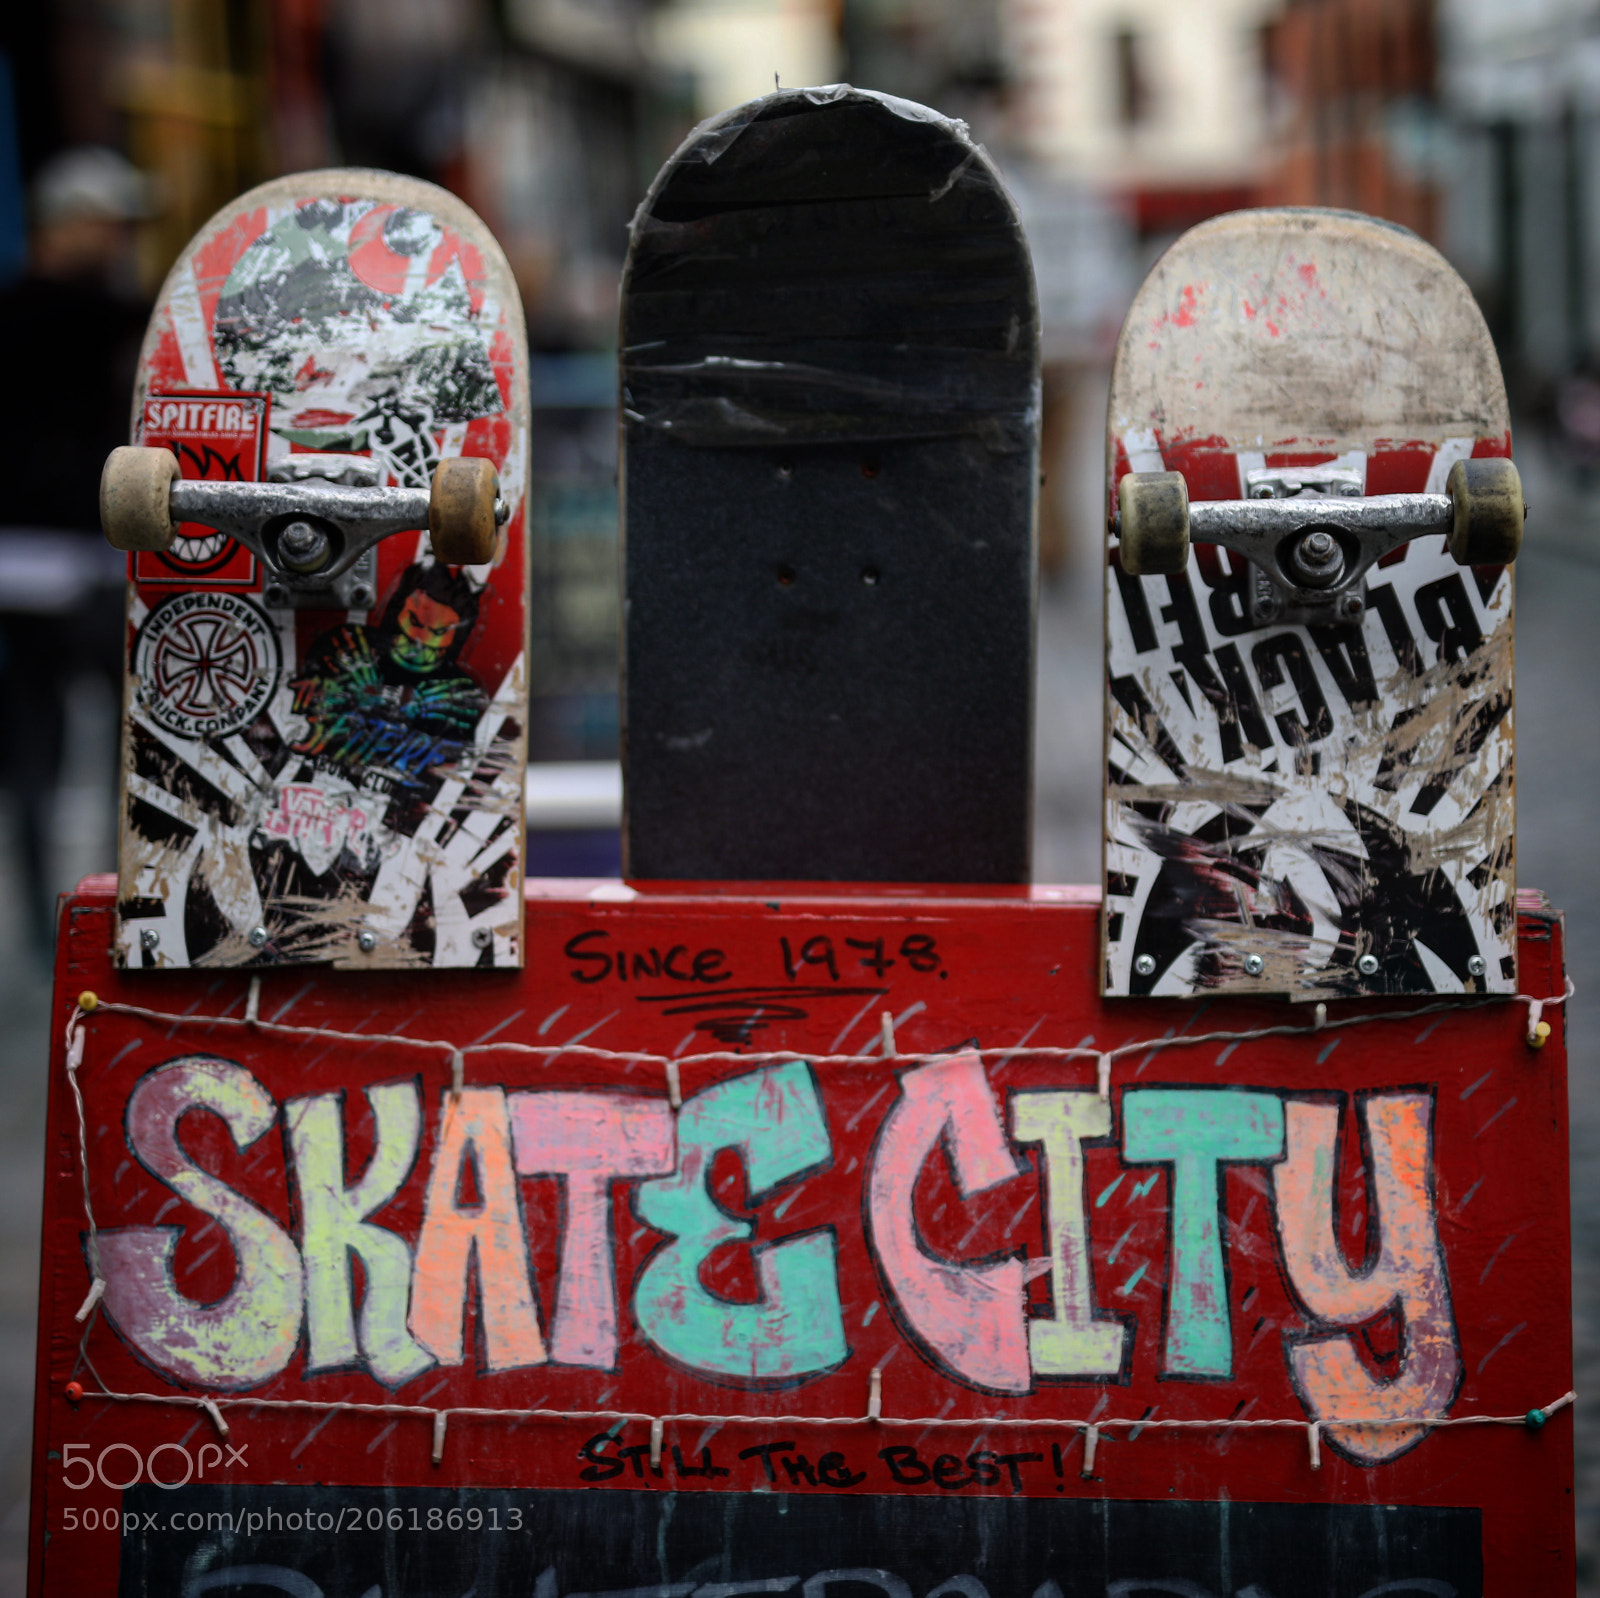 Skate City Ireland's first, Canon EOS 5D MARK IV, Canon EF 35mm f/1.4L USM